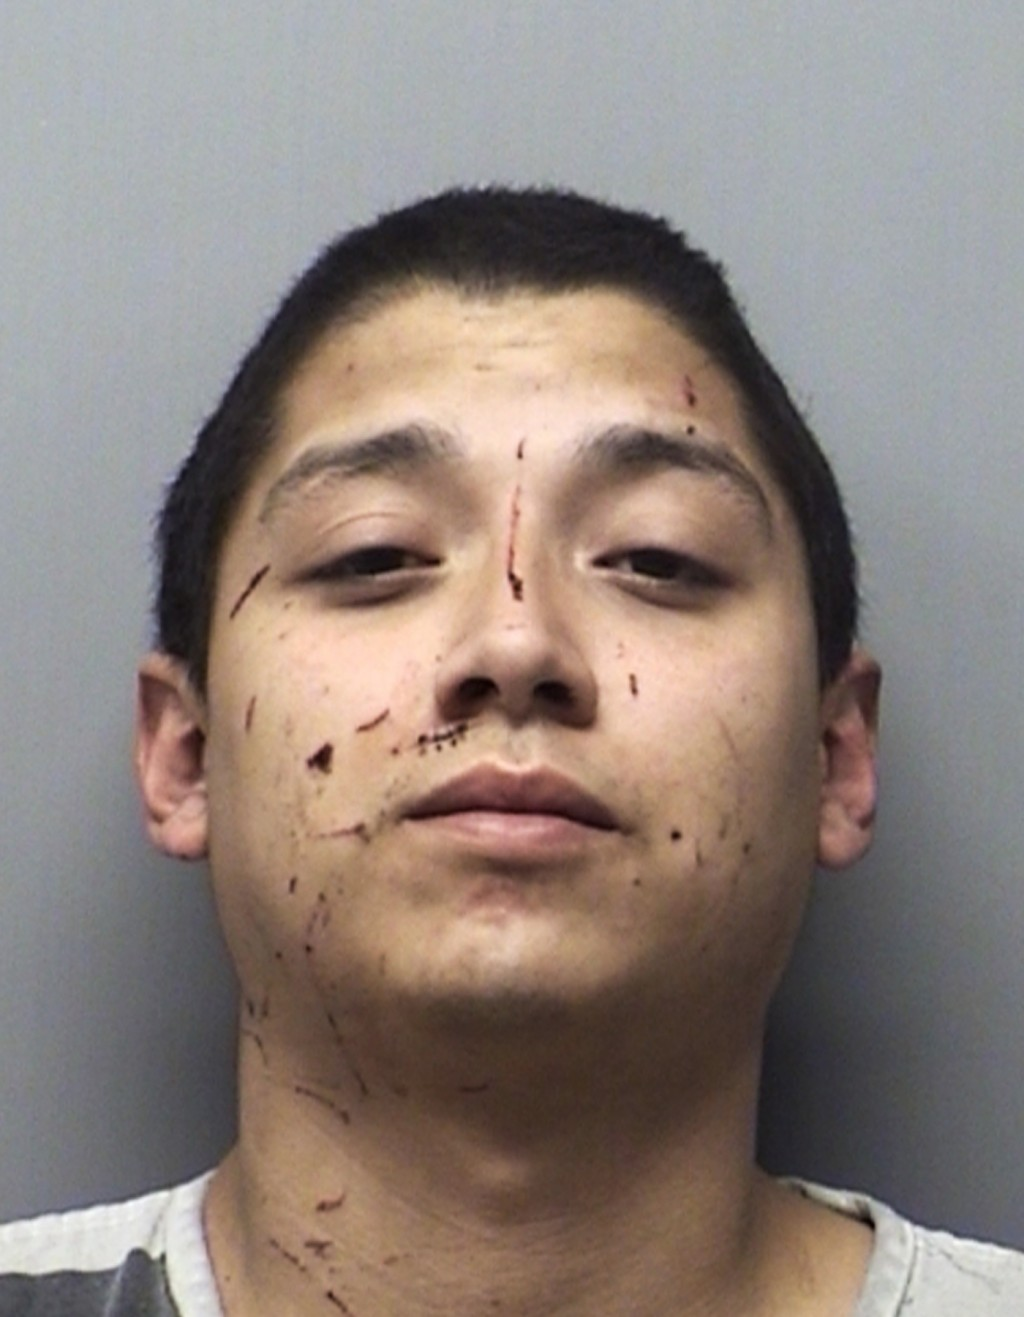 This undated photo provided by the From Wise County Sheriff's Office shows Andrew Joseph Fabila. Deputies on Tuesday, Feb. 12, 2019, discovered two ma